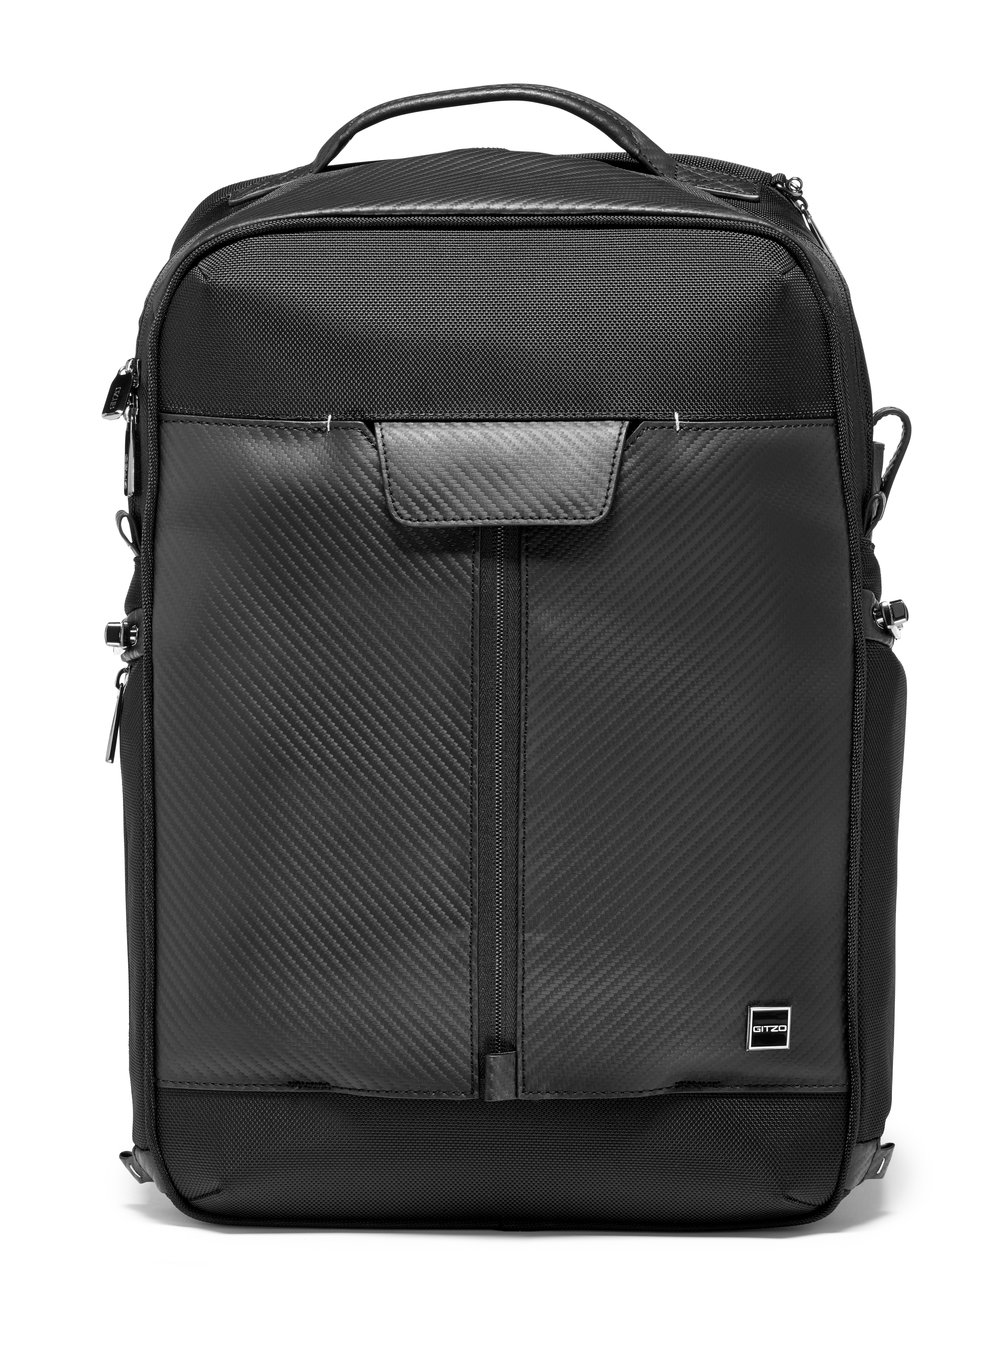 HR-GITZO_camera_bag_GCB100BP_front.jpg